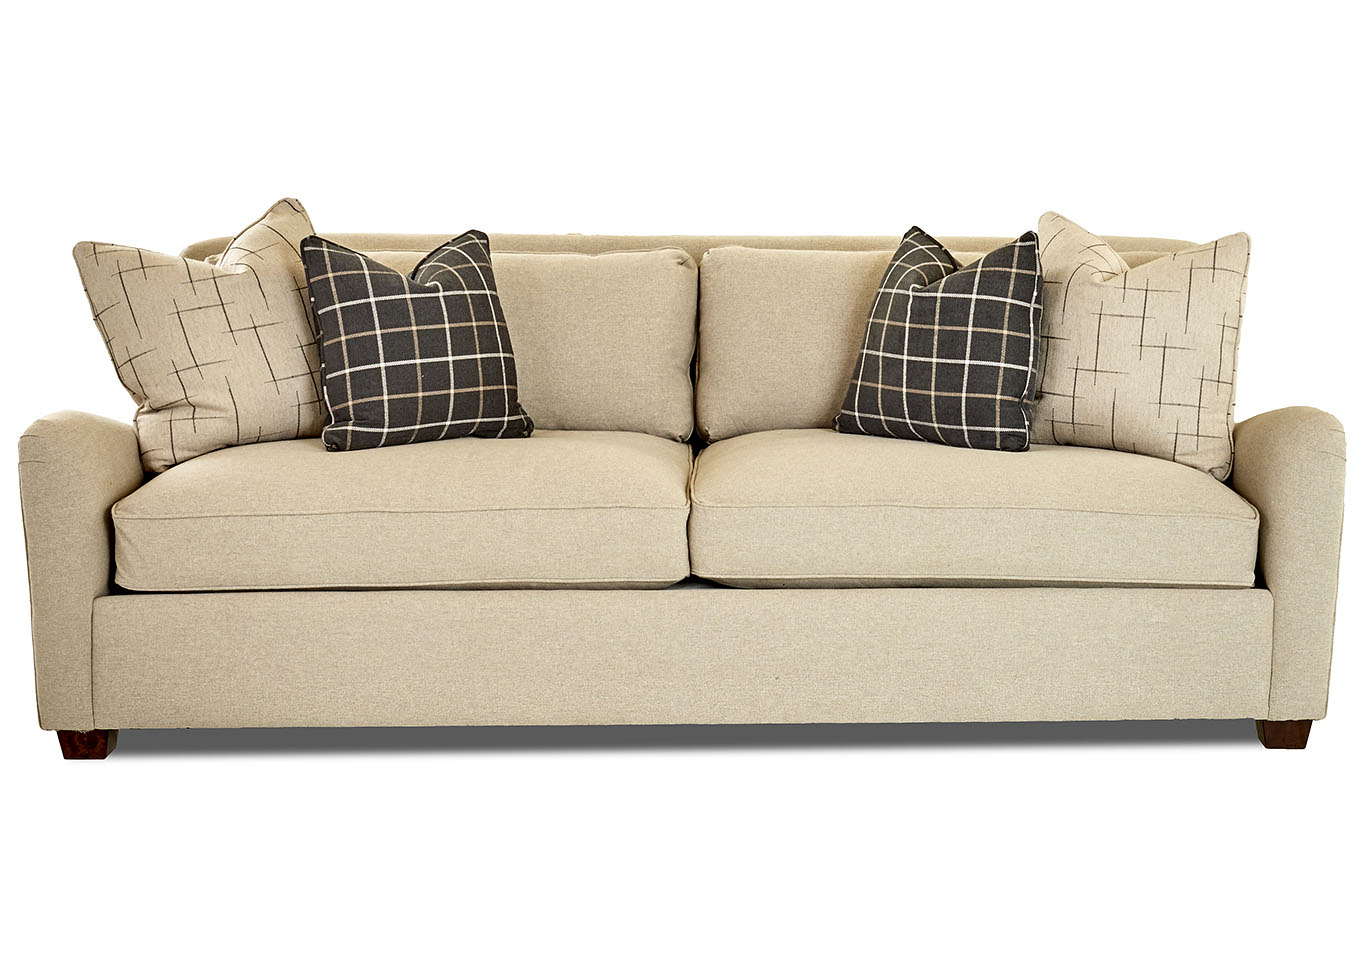 Reflection Beige Stationary Fabric Sofa,Klaussner Home Furnishings